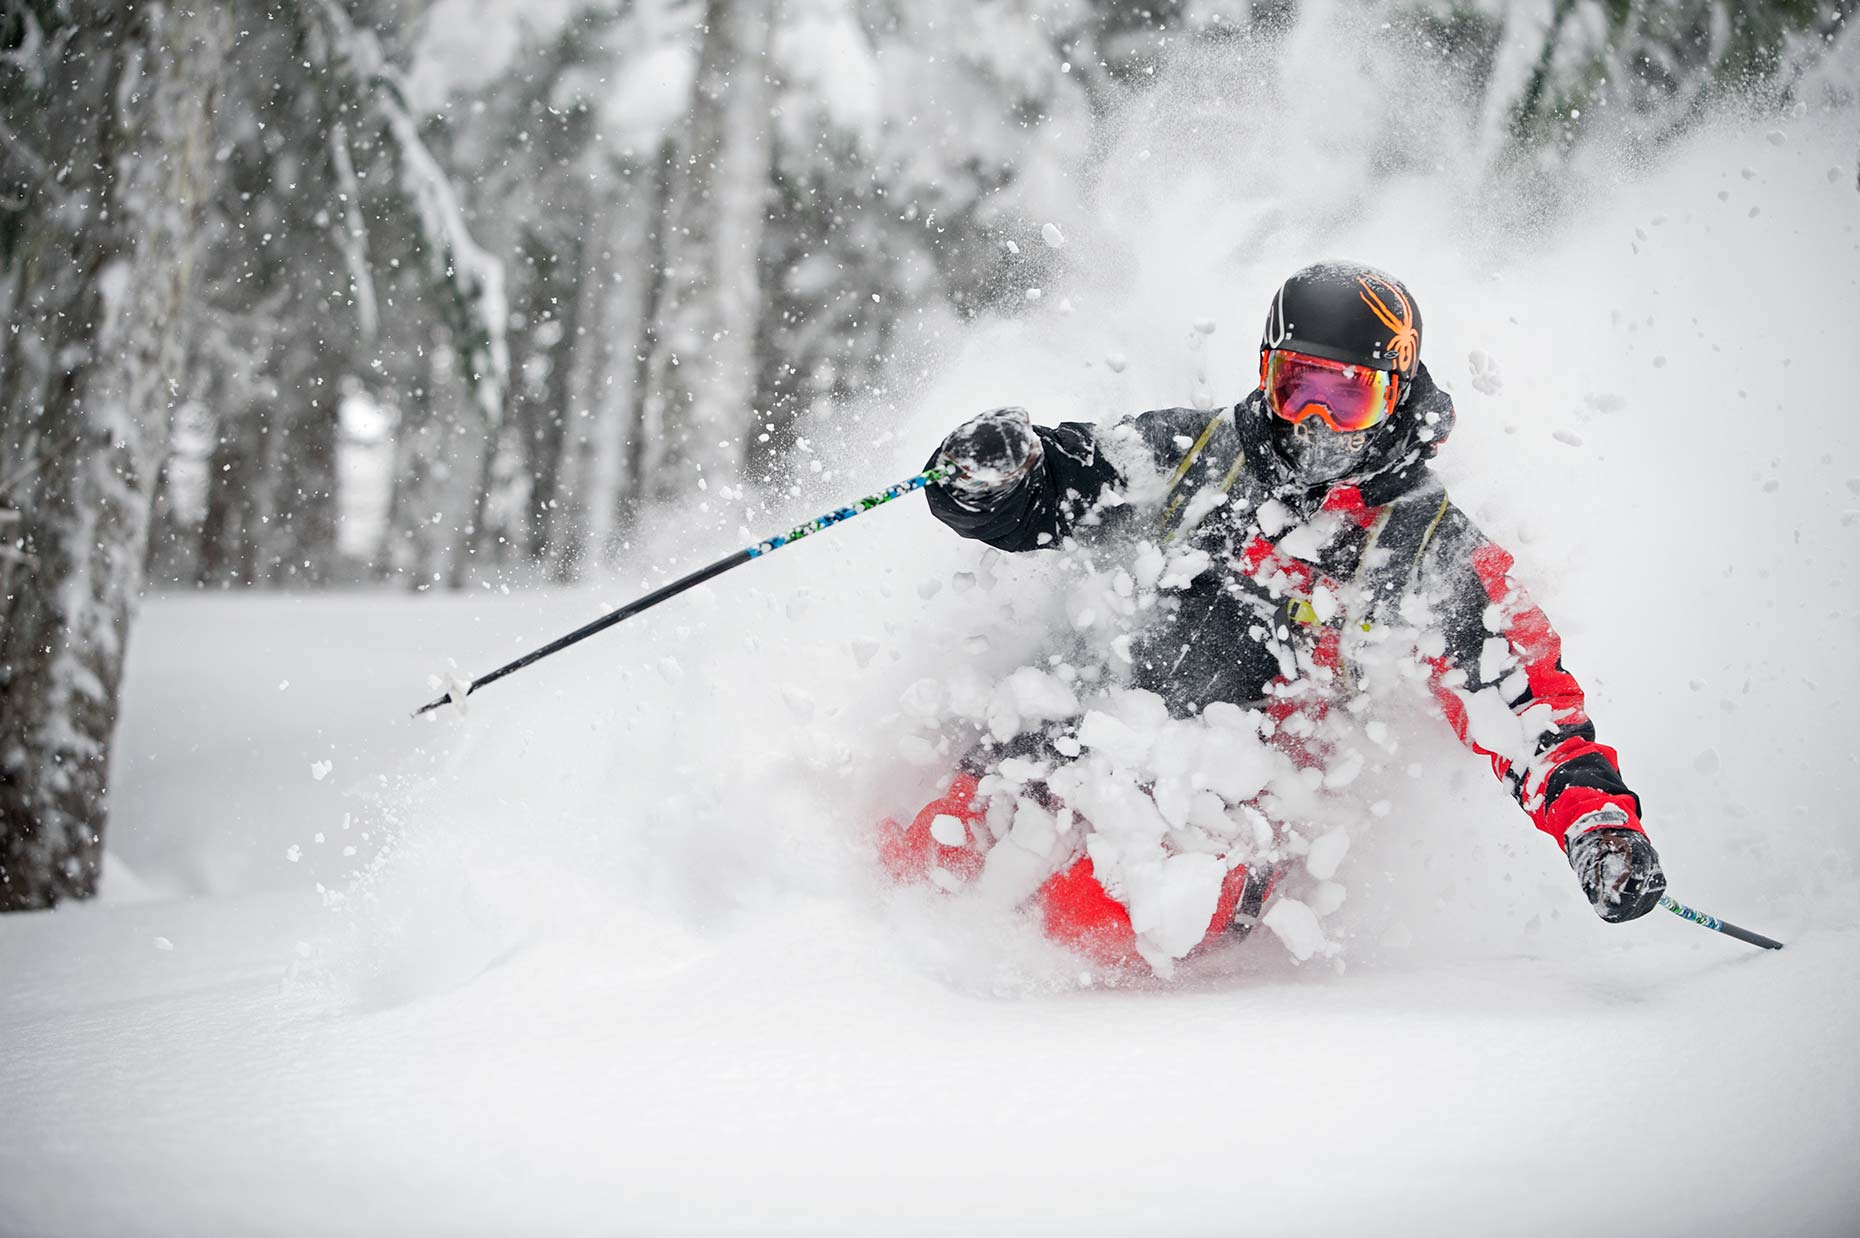 Ian-Coble-Skiing-Powder-Crystal-Mountain-Washington